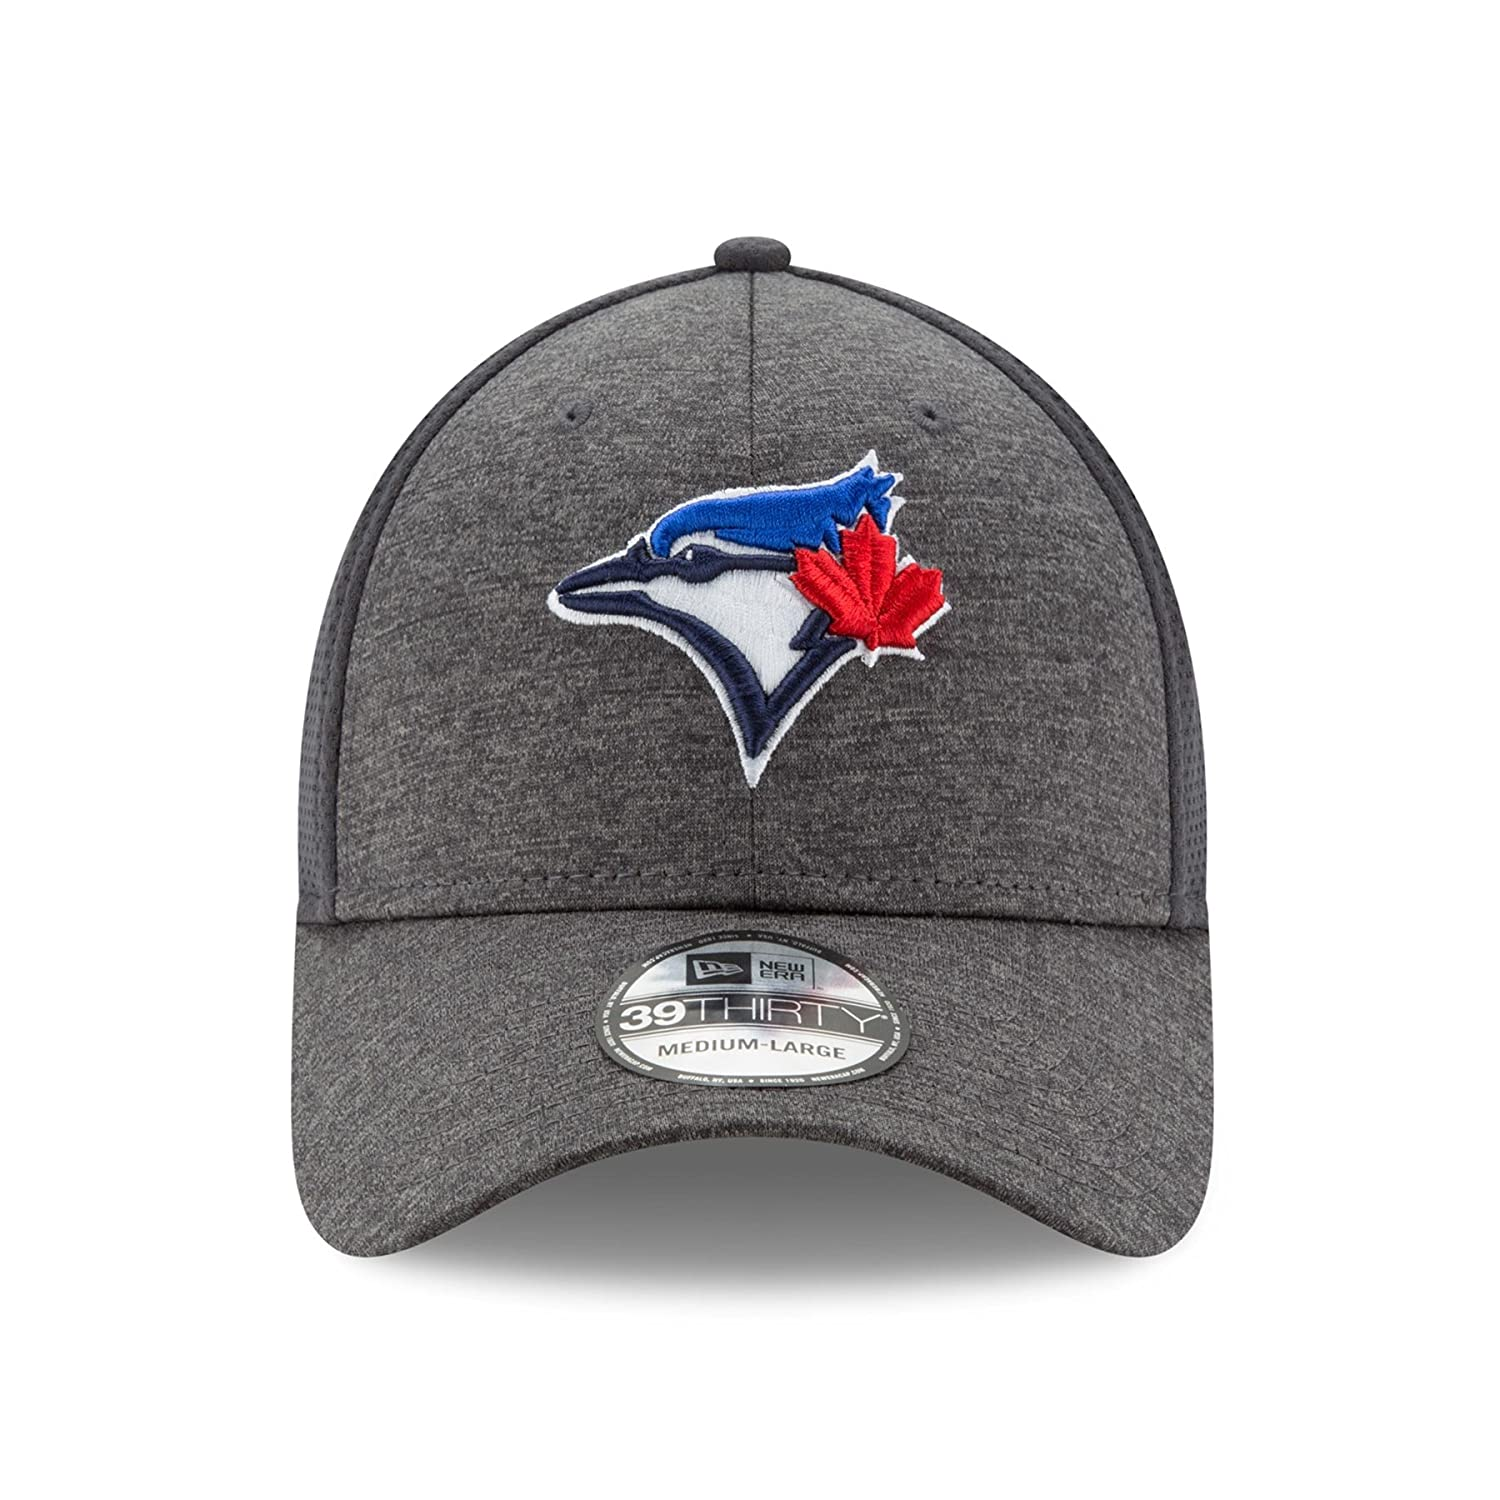 new product a3924 531bf ... hot toronto blue jays shadowed team 2 39thirty stretch fit hat graphite  size medium large baseball